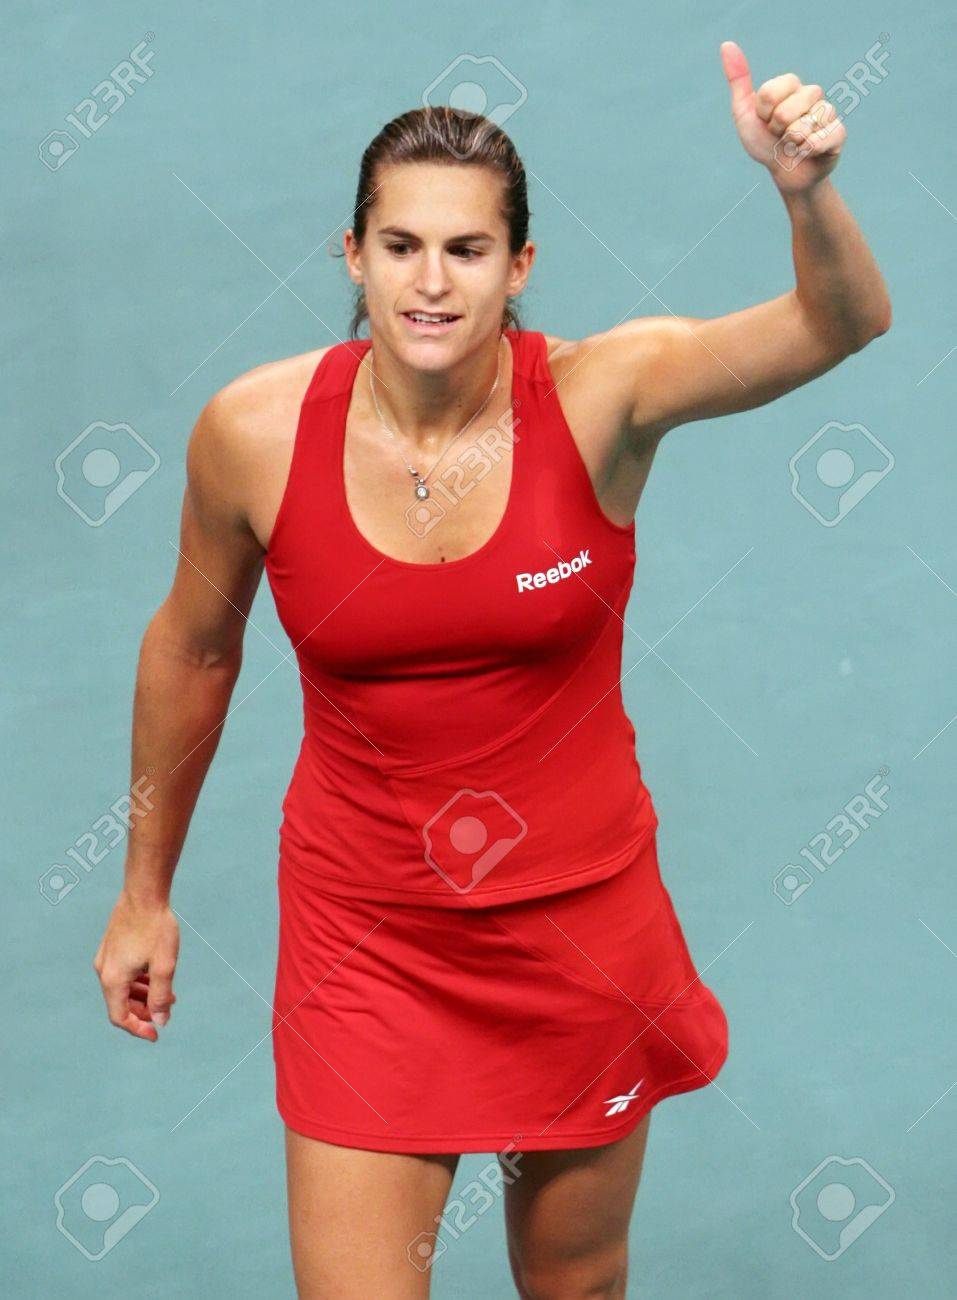 PARIS FEBRUARY 13 French Tennis Player Amelie Mauresmo Does